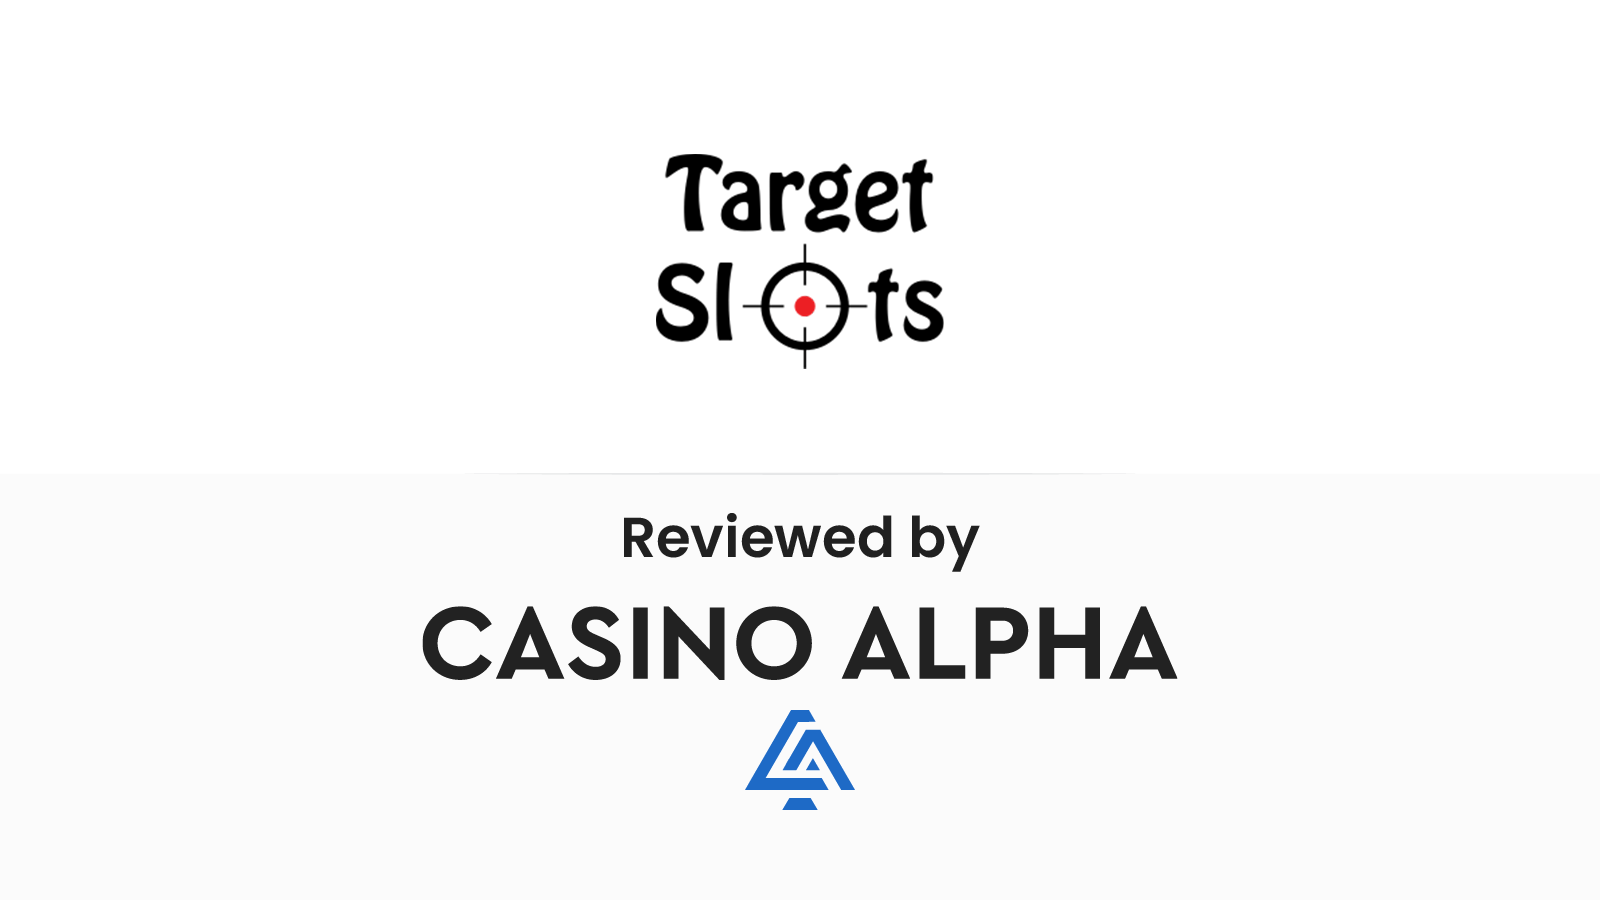 Target Slots Review & Offers → Complete List